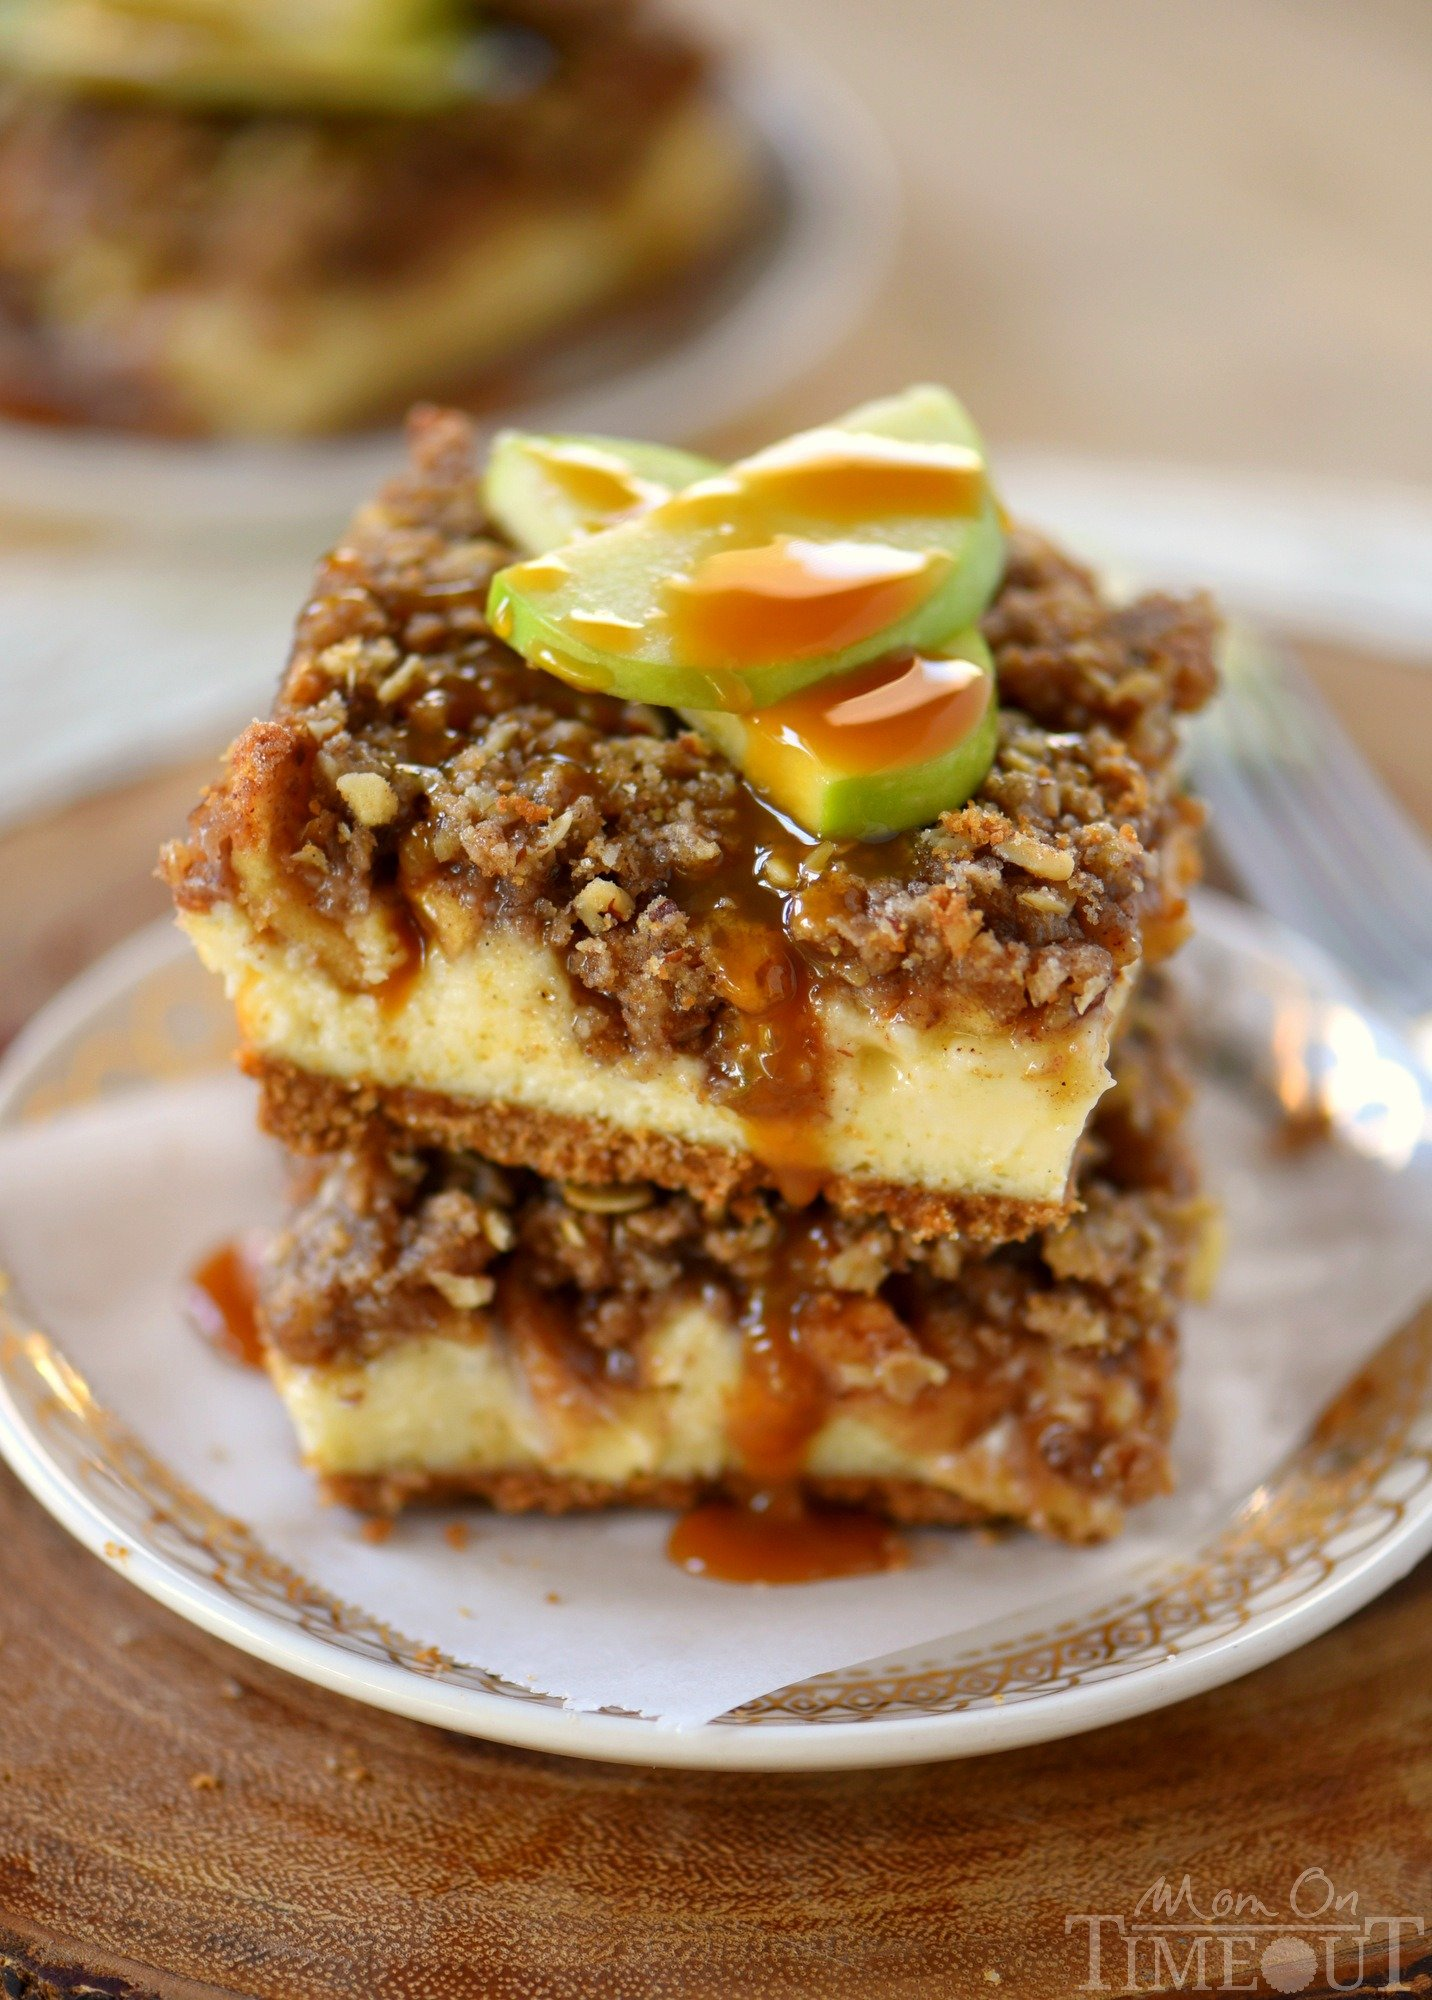 Apple season has arrived and to celebrate, I'm sharing these outrageous Dutch Apple Pie Cheesecake Bars! A graham cracker crust spiced with cinnamon, a decadent vanilla bean cheesecake layer, apples tossed in sugar, cinnamon, and nutmeg and finally my favorite streusel topping. Yeah, WOW. | Mom On Timeout